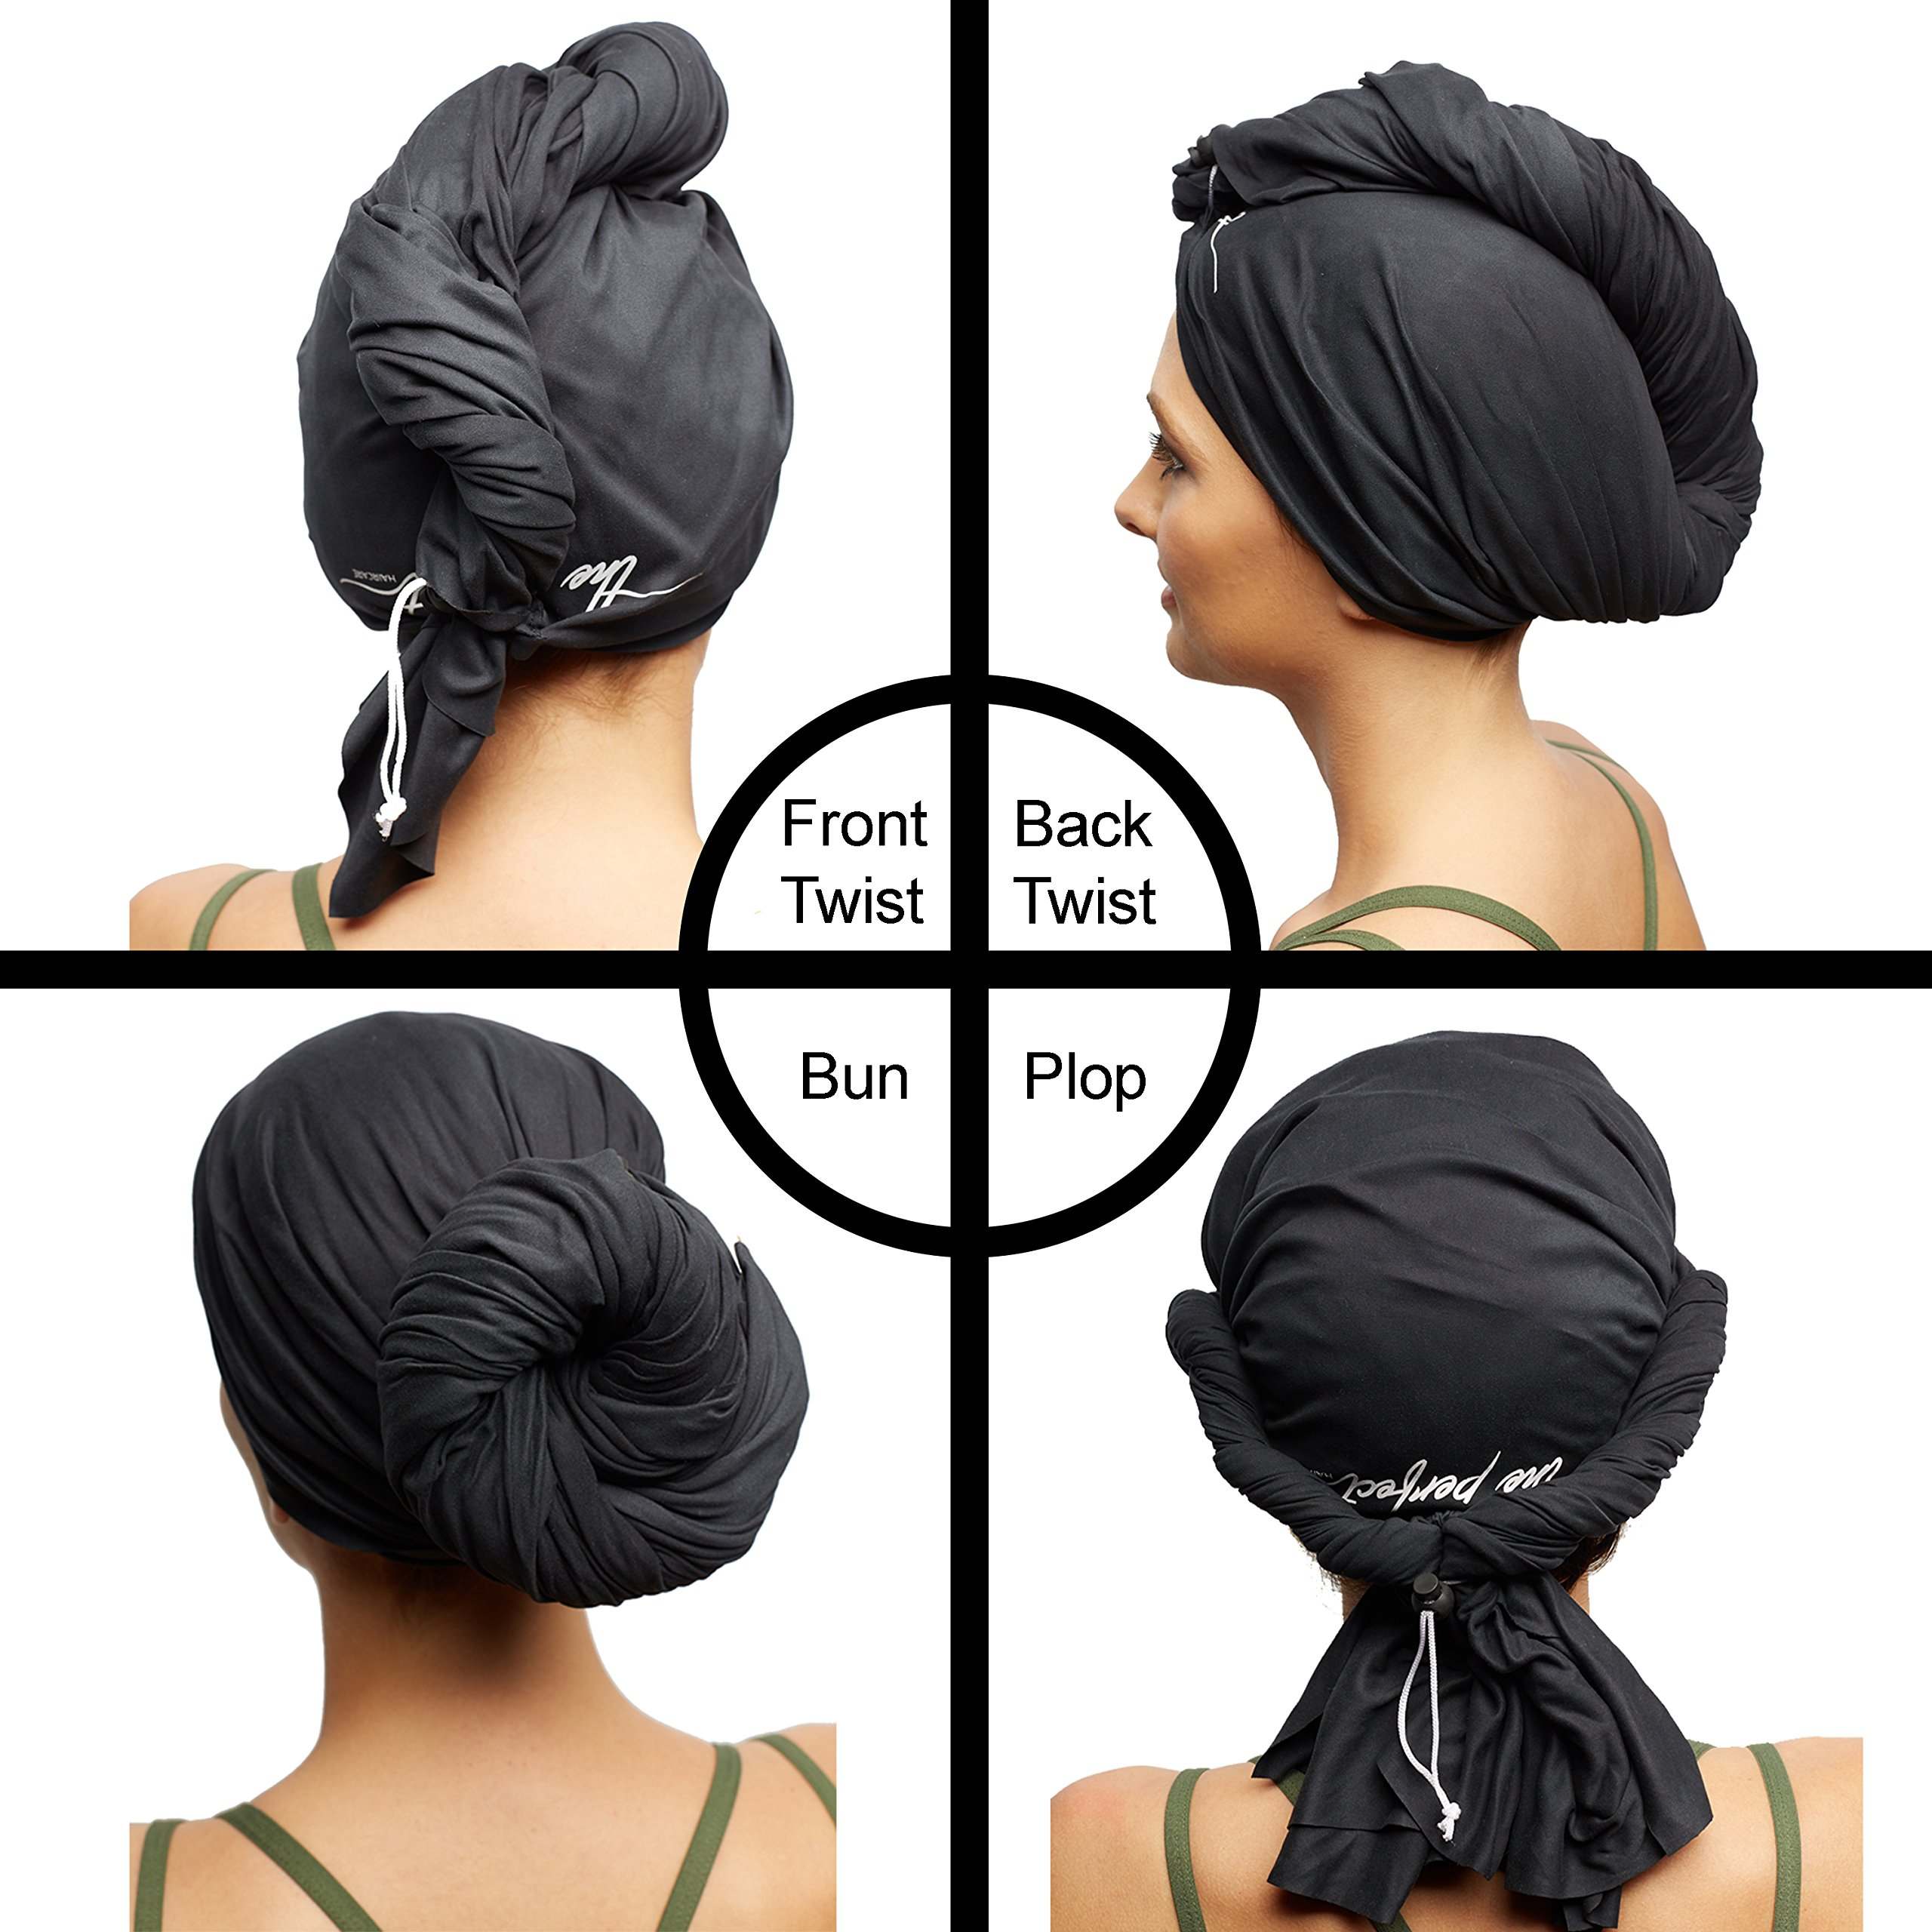 The Perfect Microfiber Hair Towel Wrap - Absorbent Turban for Fast, Anti-Frizz Drying - Never Falls Off Curly or Straight Hair - (38.5''x27.5'') Includes Wet or Dry Detangling Brush (Black) by The Perfect Haircare (Image #3)